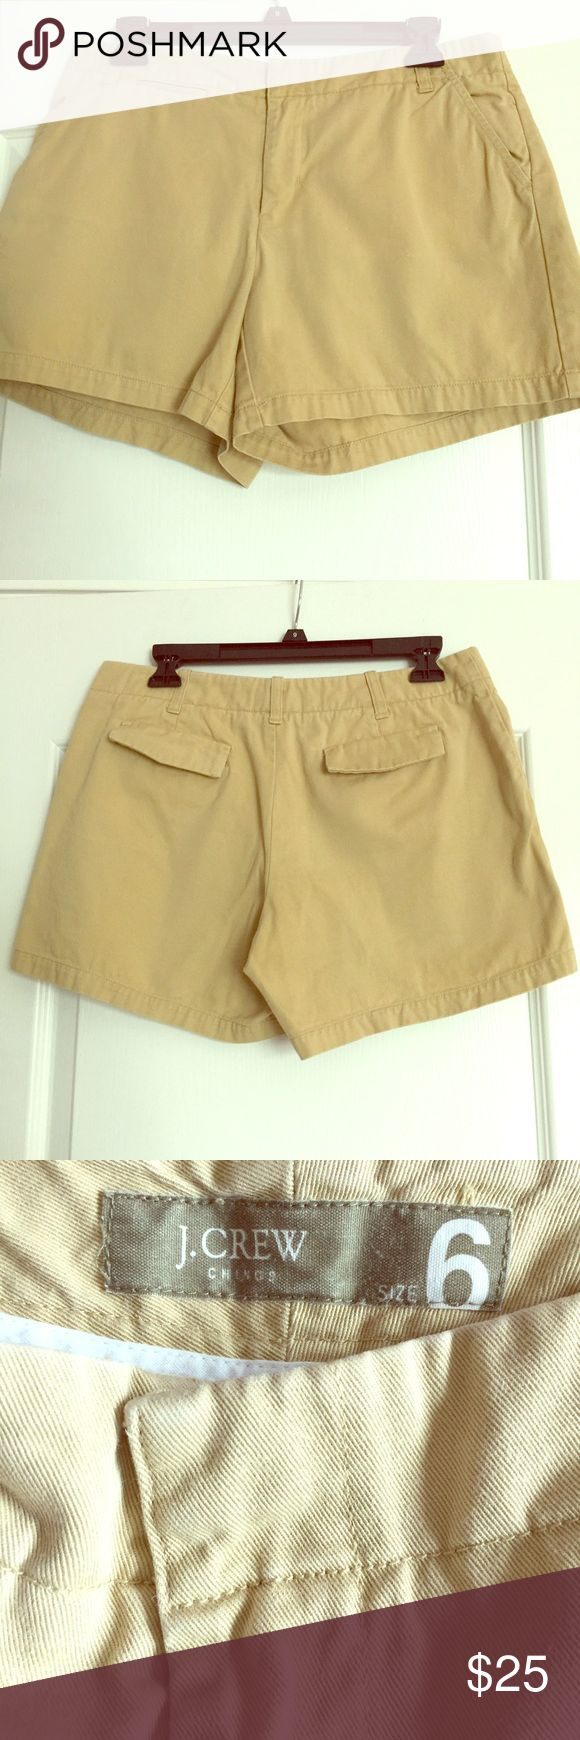 J. Crew Women's  Khaki Shorts J.Crew Chinos Collection. Khaki height is 13 inches. Material is 100% cotton. J. Crew Shorts